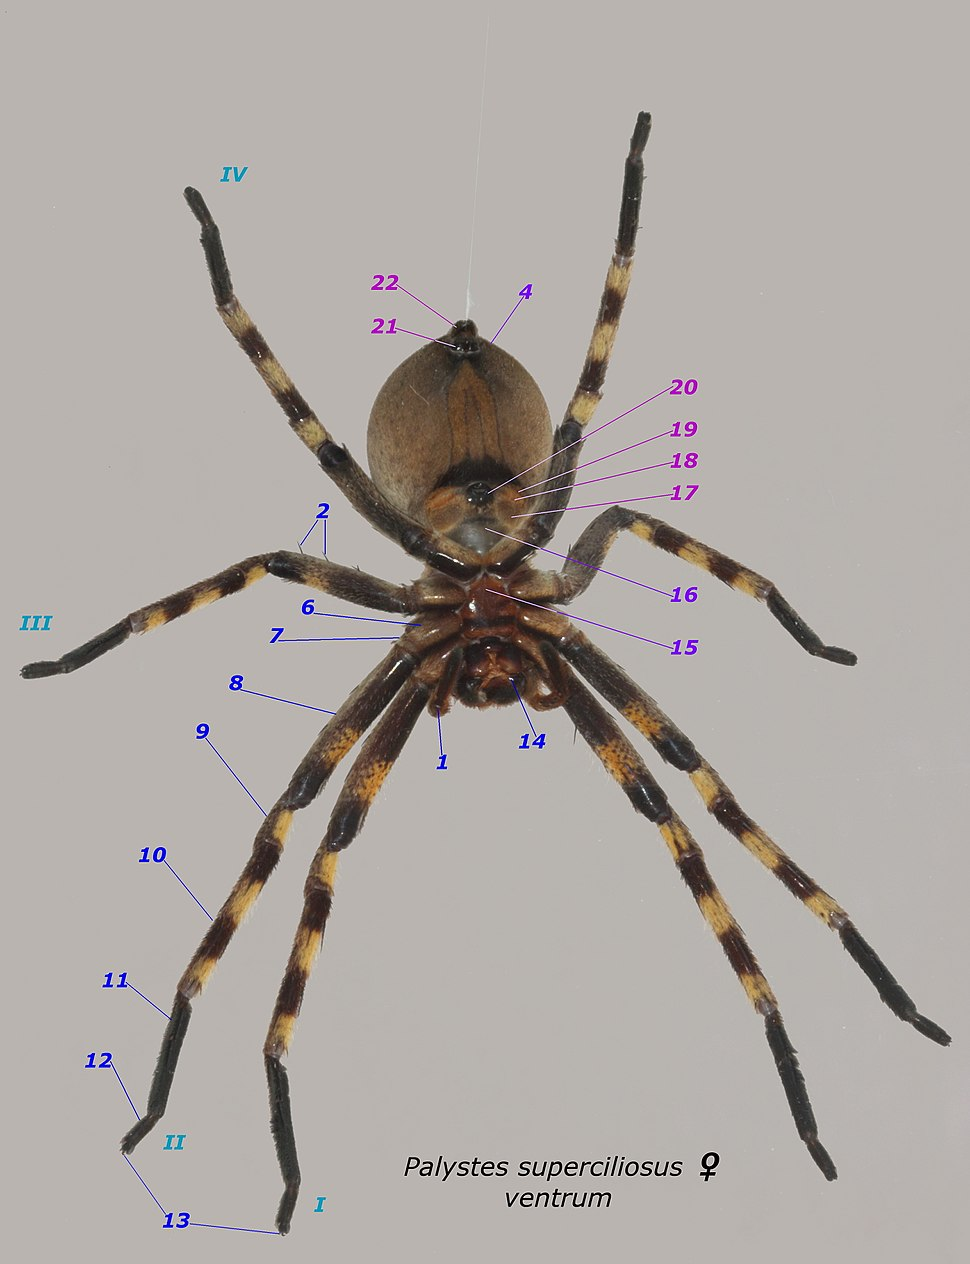 Palystes superciliosus female ventral annotation numbers